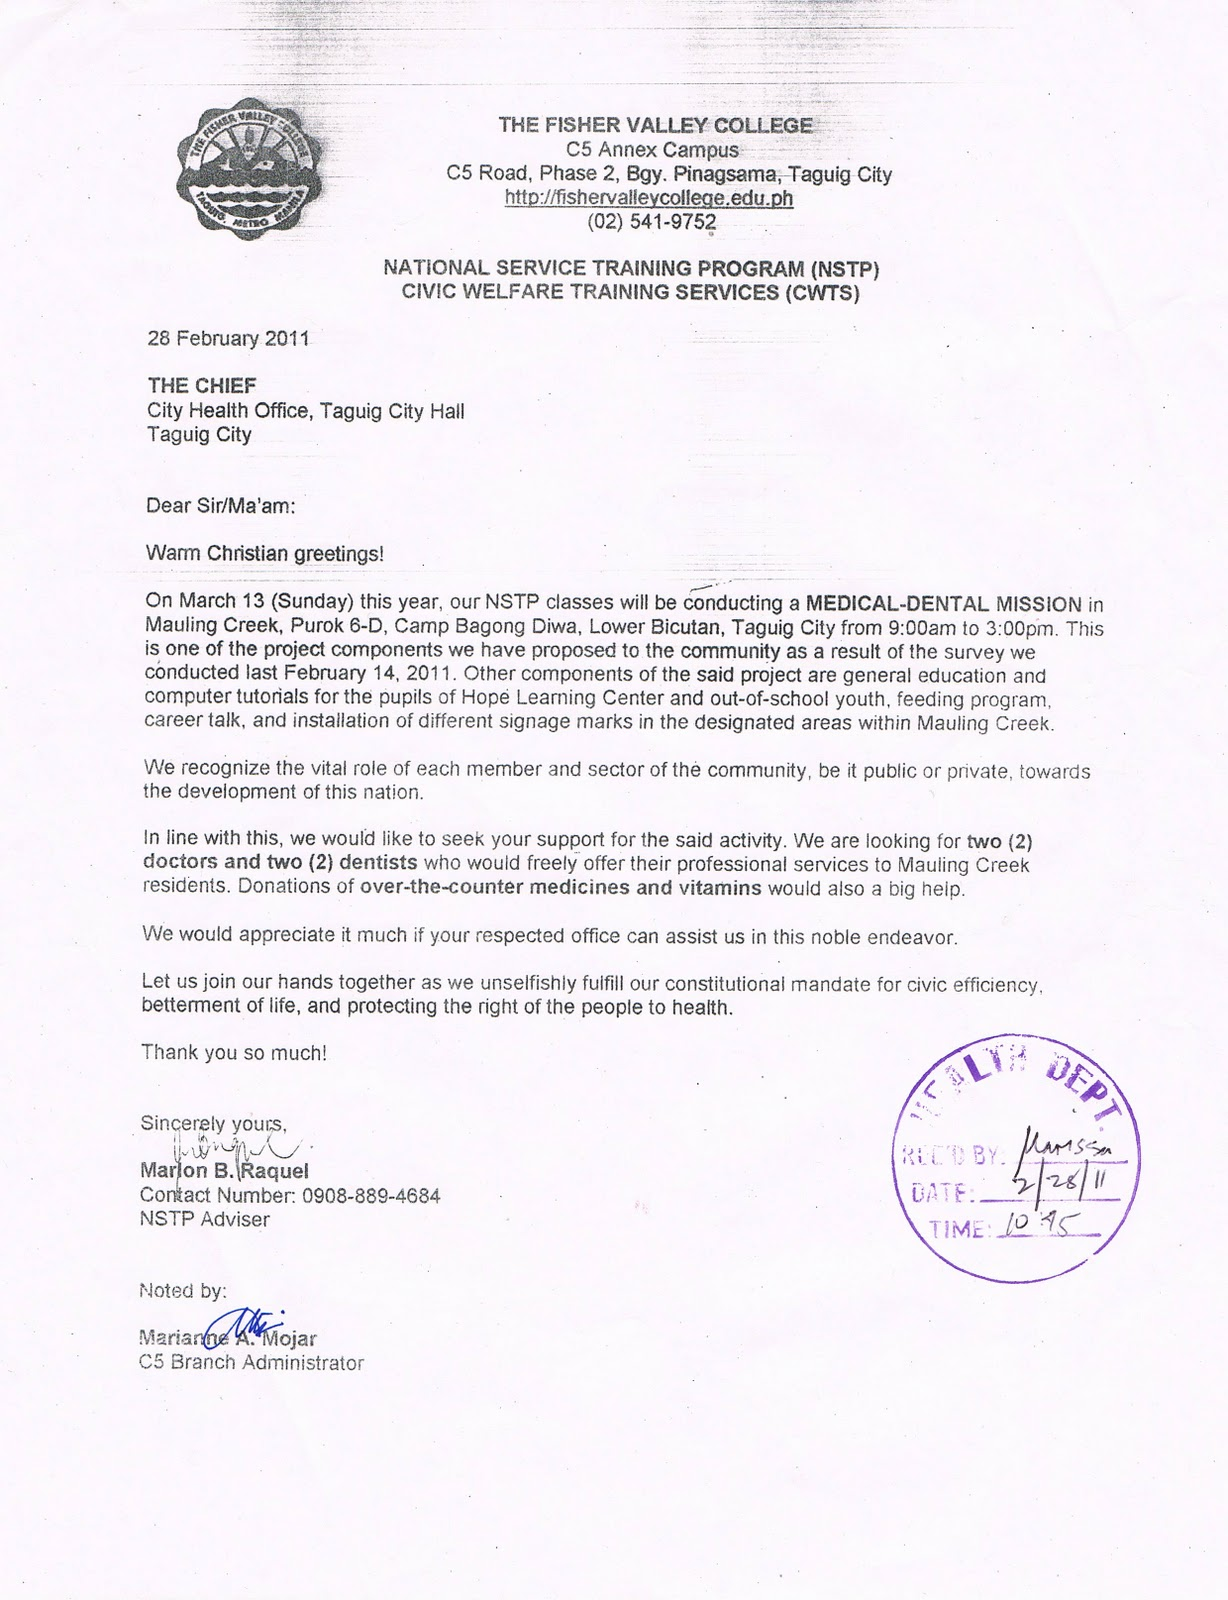 The fisher valley college letter to the city health office letter to the city health office taguig city yelopaper Gallery